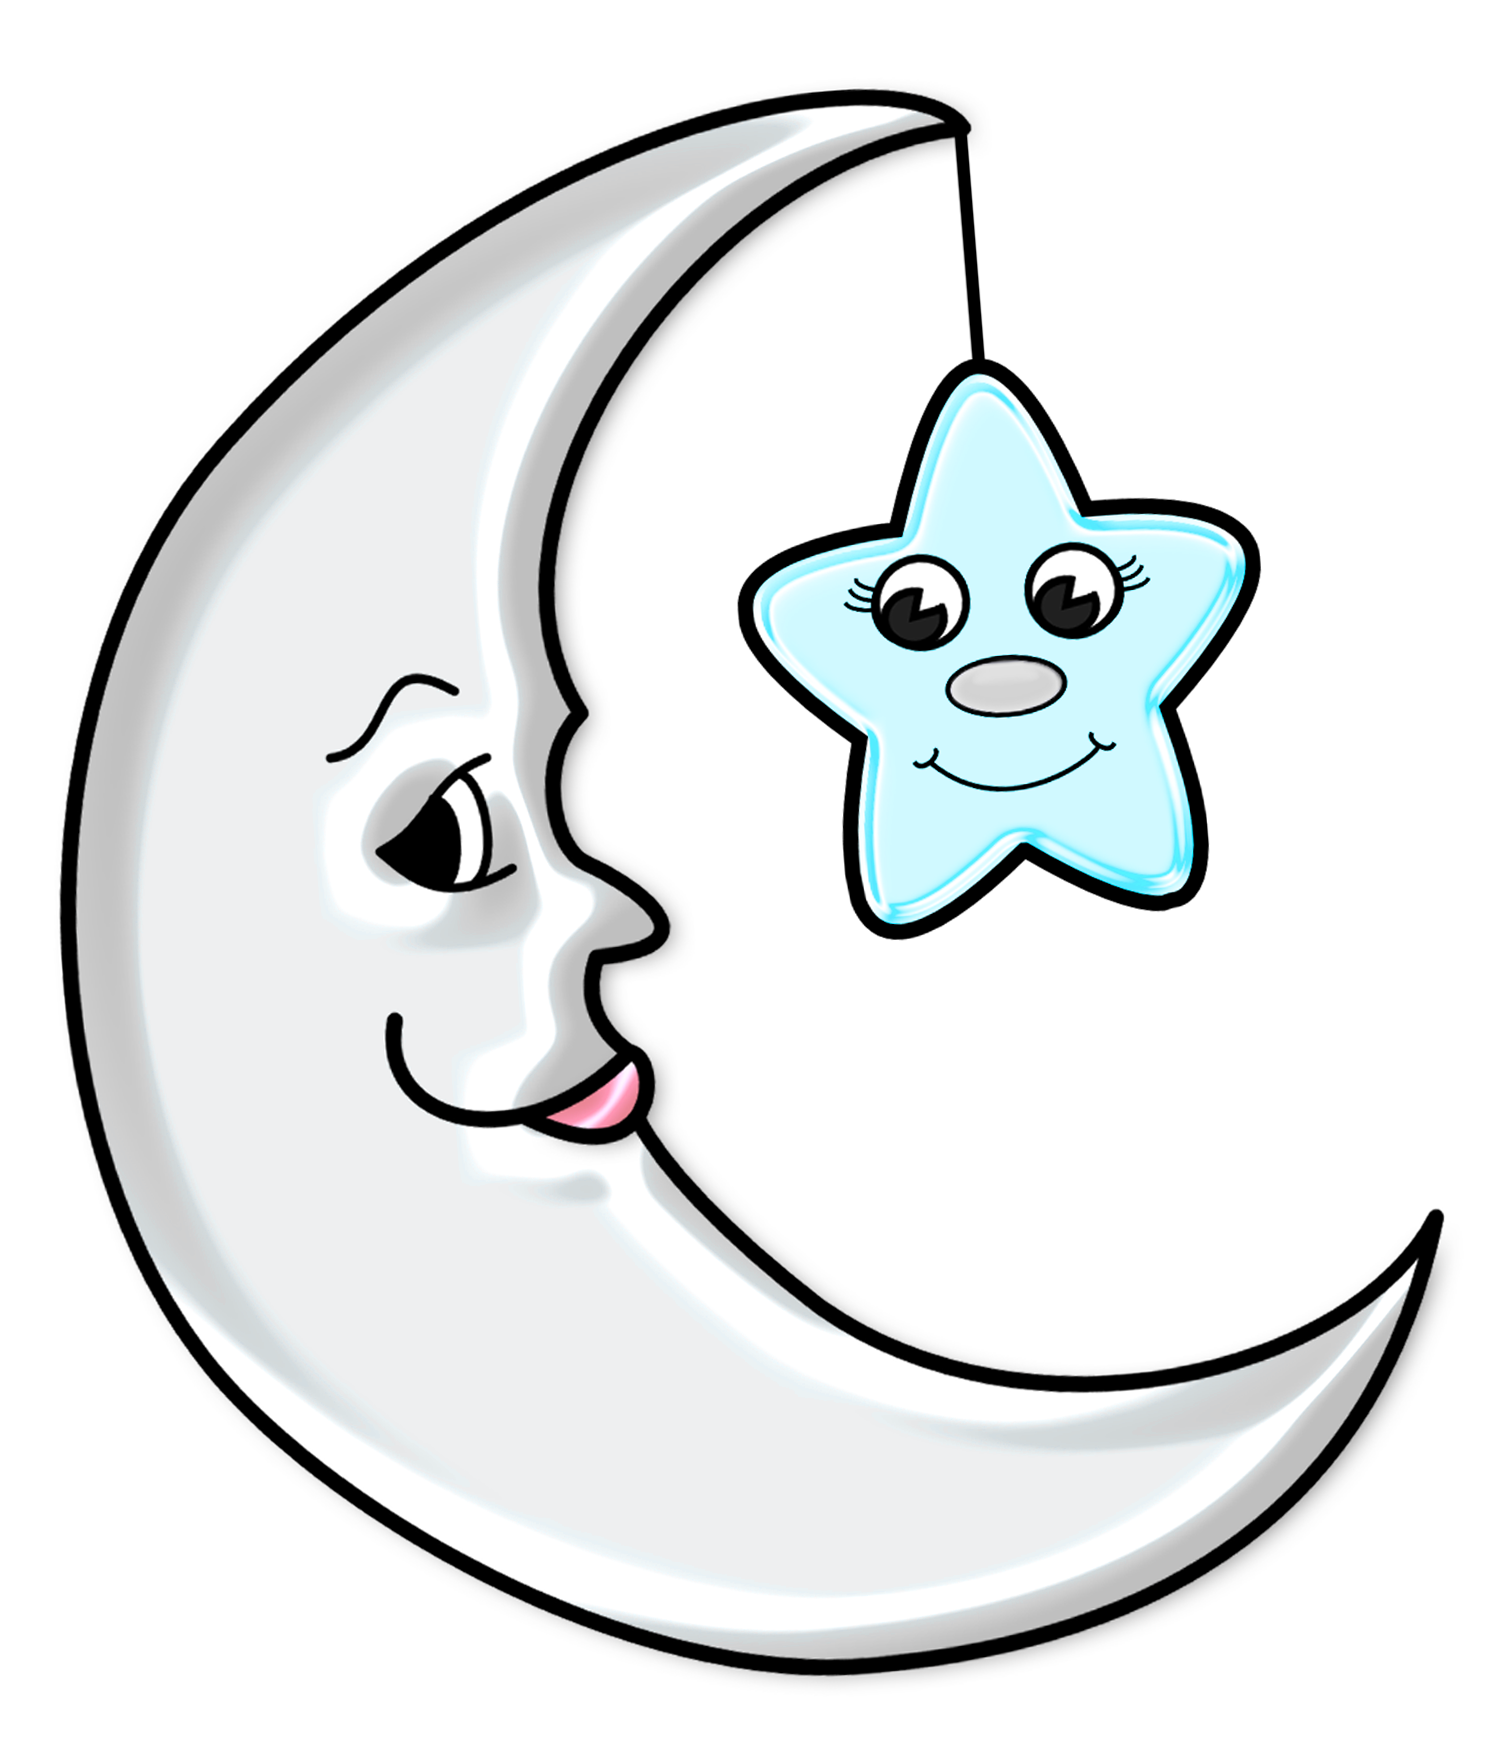 1500x1759 Cute Moon with Star Transparent PNG Pictureu200b Gallery - Moon And Star PNG HD